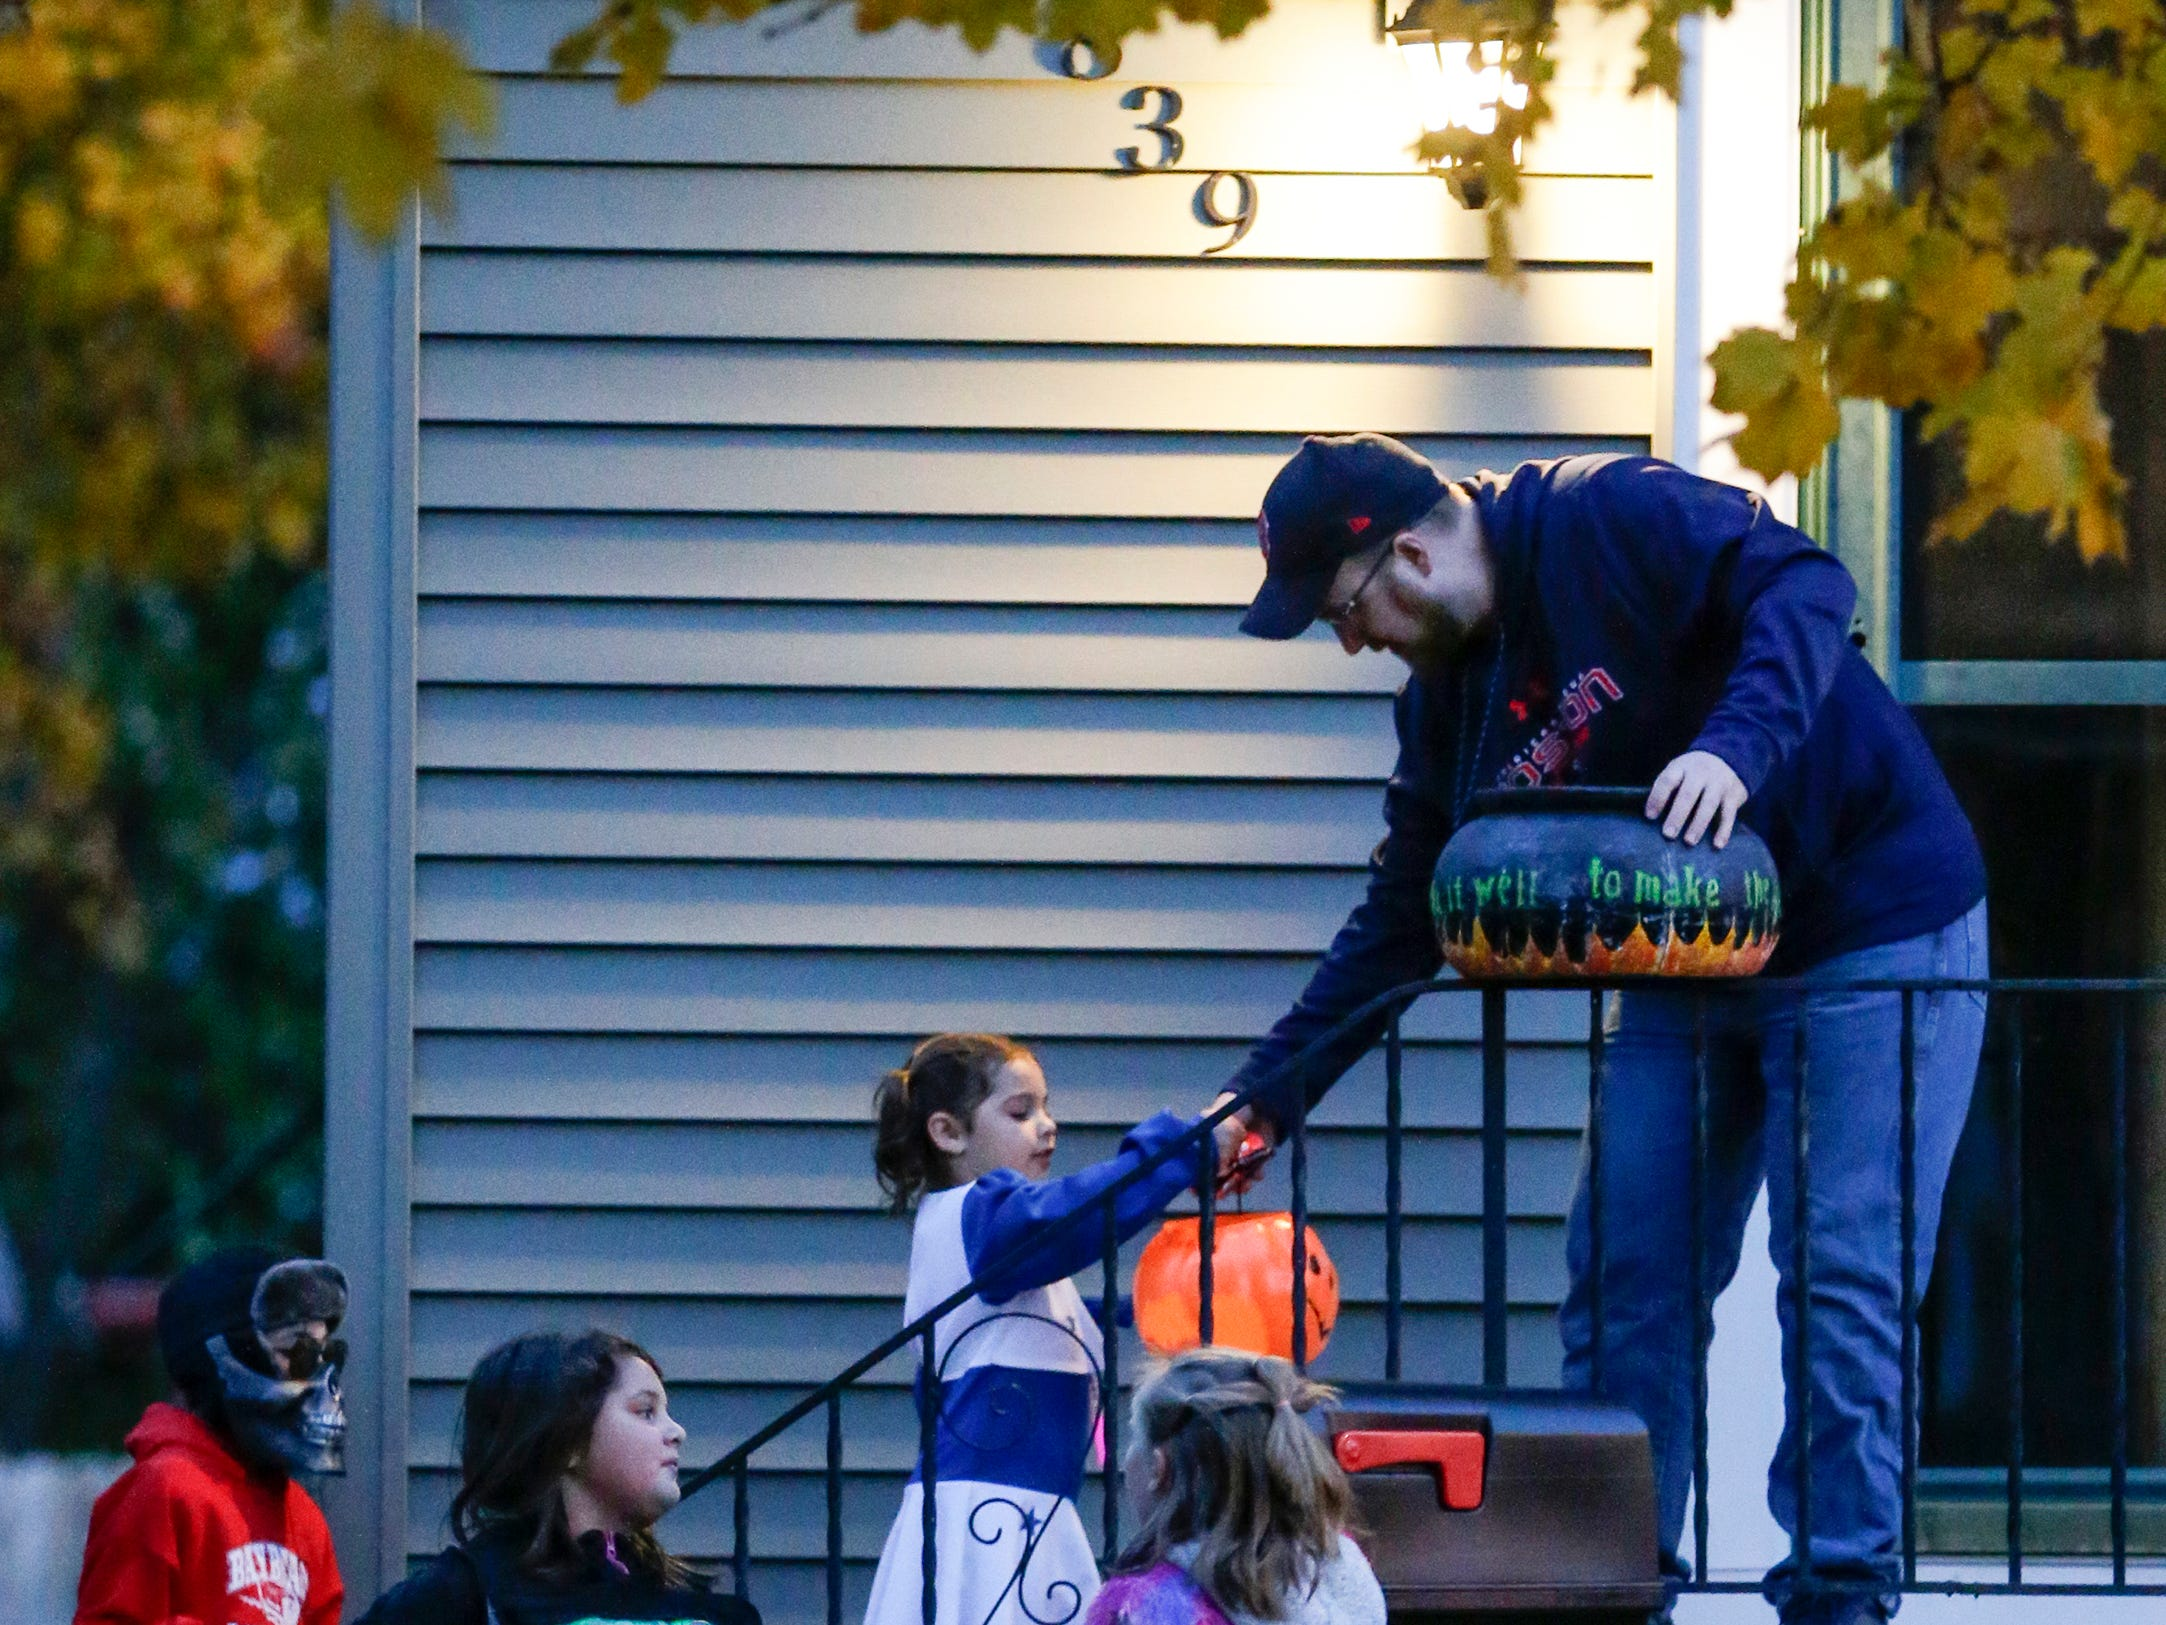 Clint Duzeski hands out candy to trick-or-treaters on Halloween Wednesday, October 31, 2018, in Manitowoc, Wis. Joshua Clark/USA TODAY NETWORK-Wisconsin